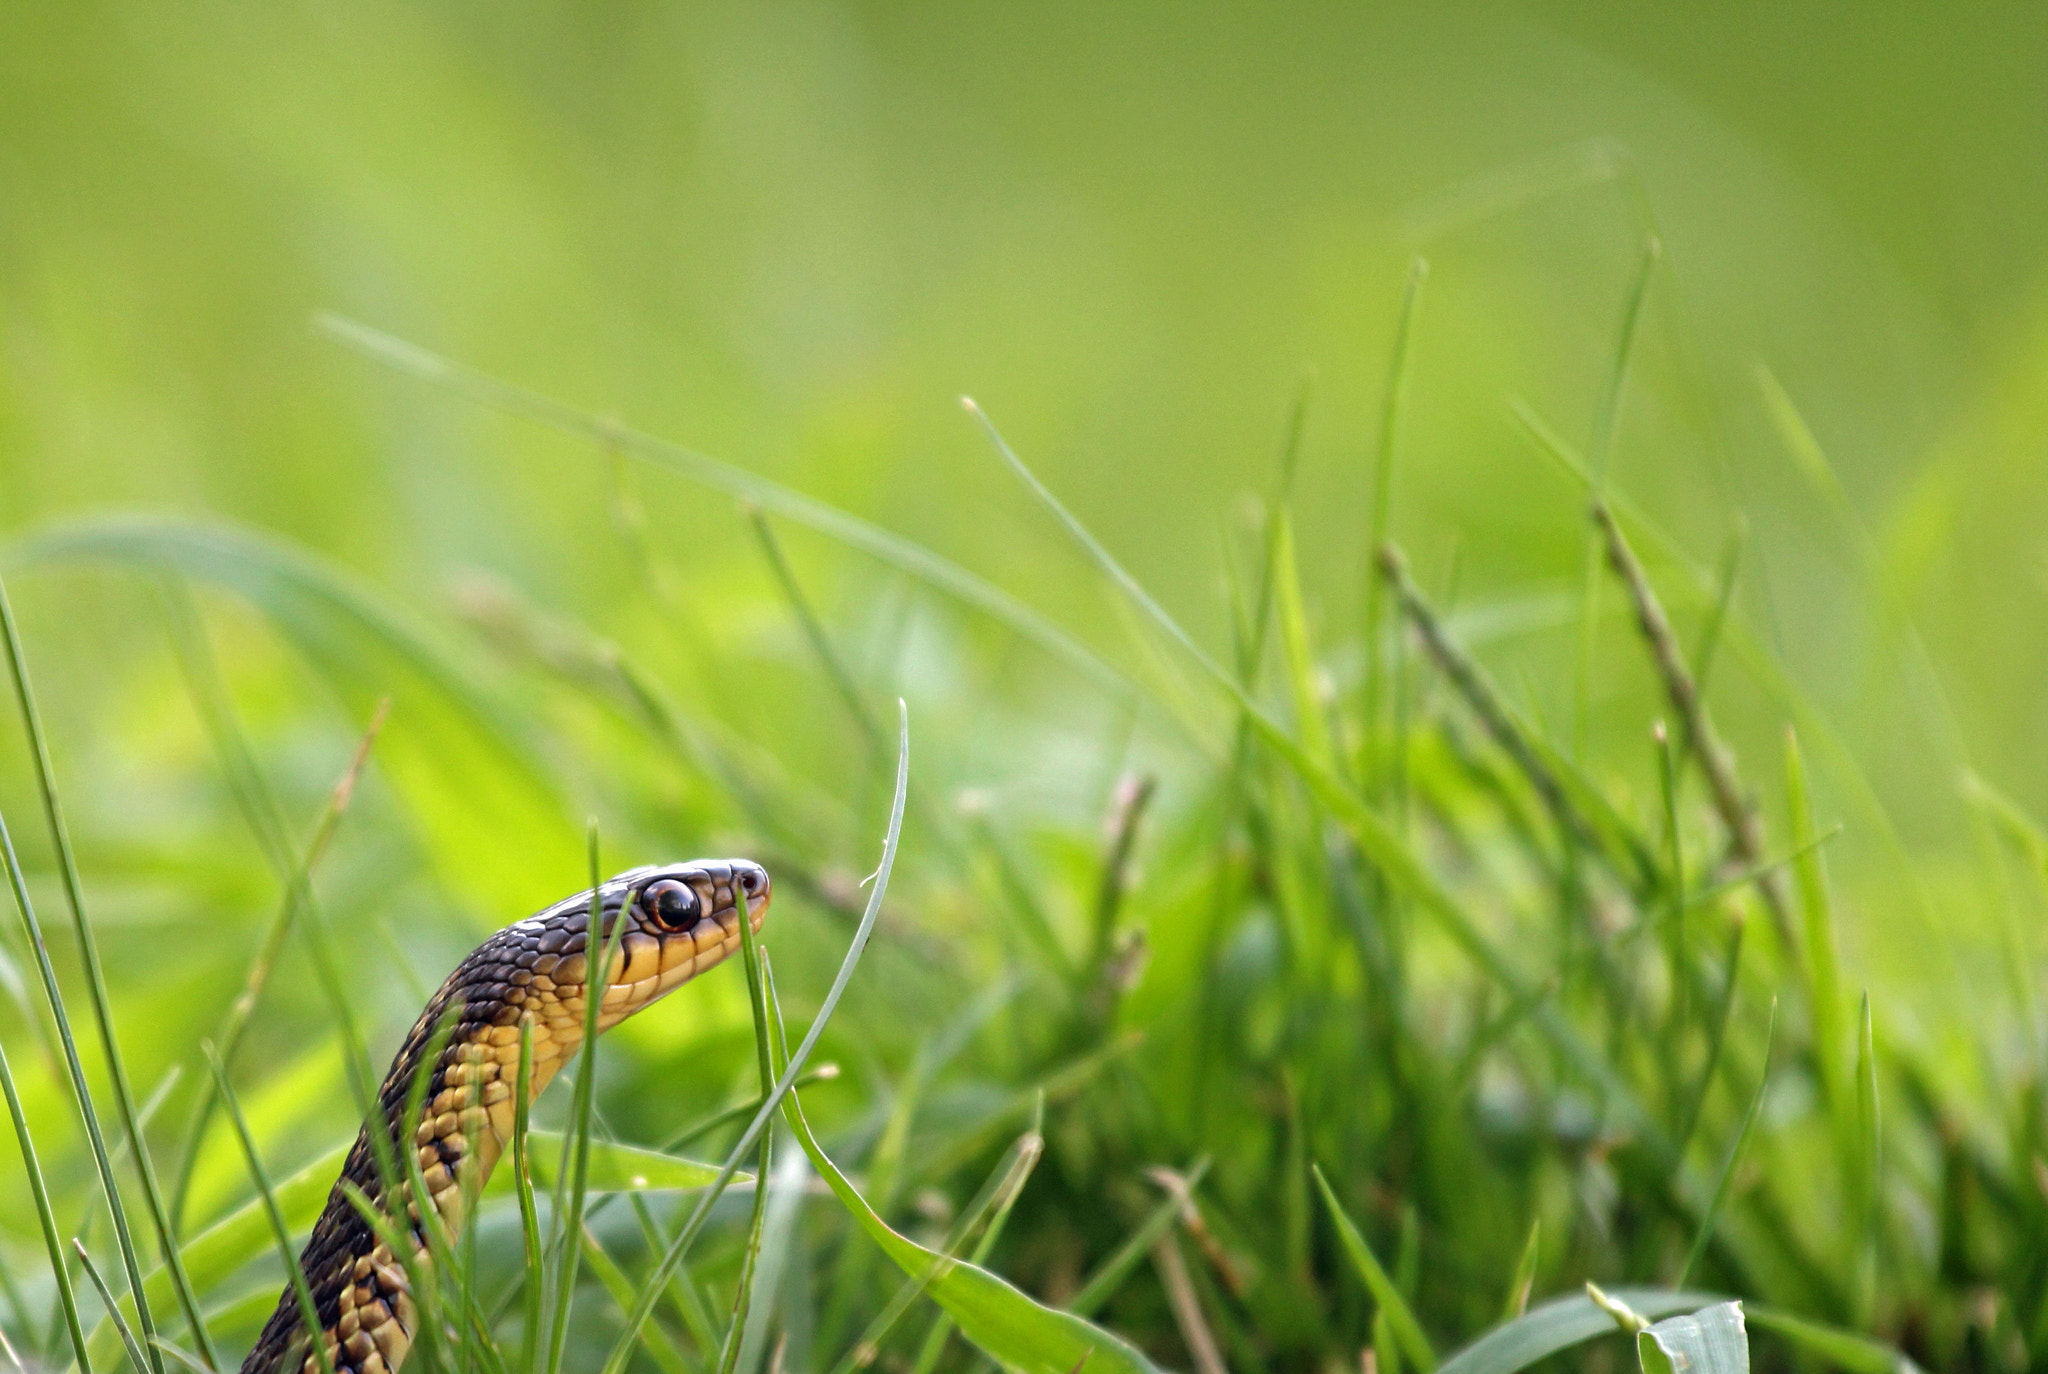 Photograph Common Garter Snake (Thamnophis sirtalis) by Maddin n.a. on 500px